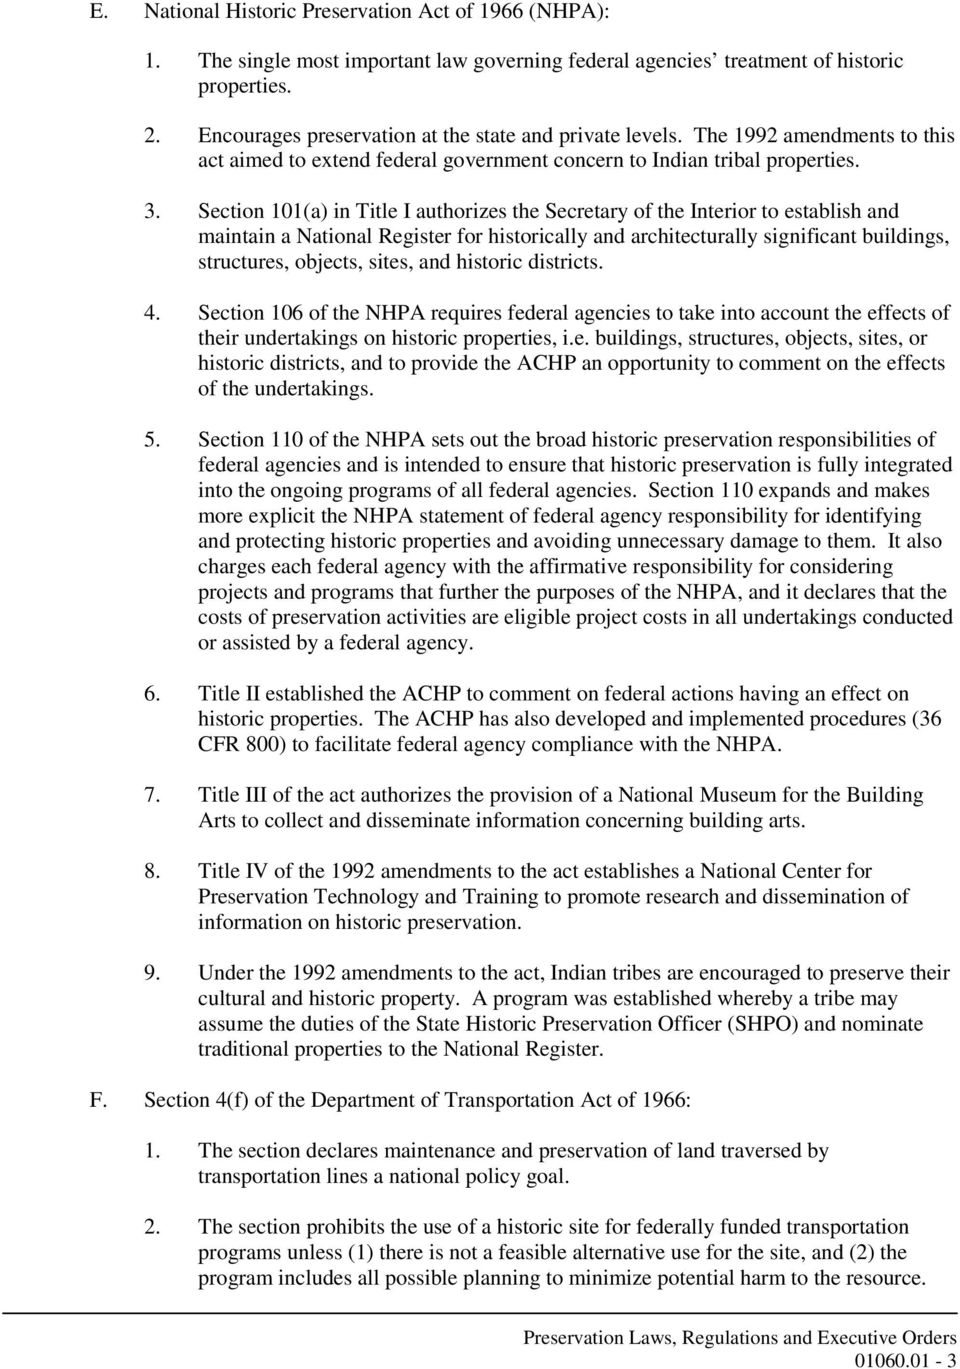 Section 101(a) in Title I authorizes the Secretary of the Interior to establish and maintain a National Register for historically and architecturally significant buildings, structures, objects,